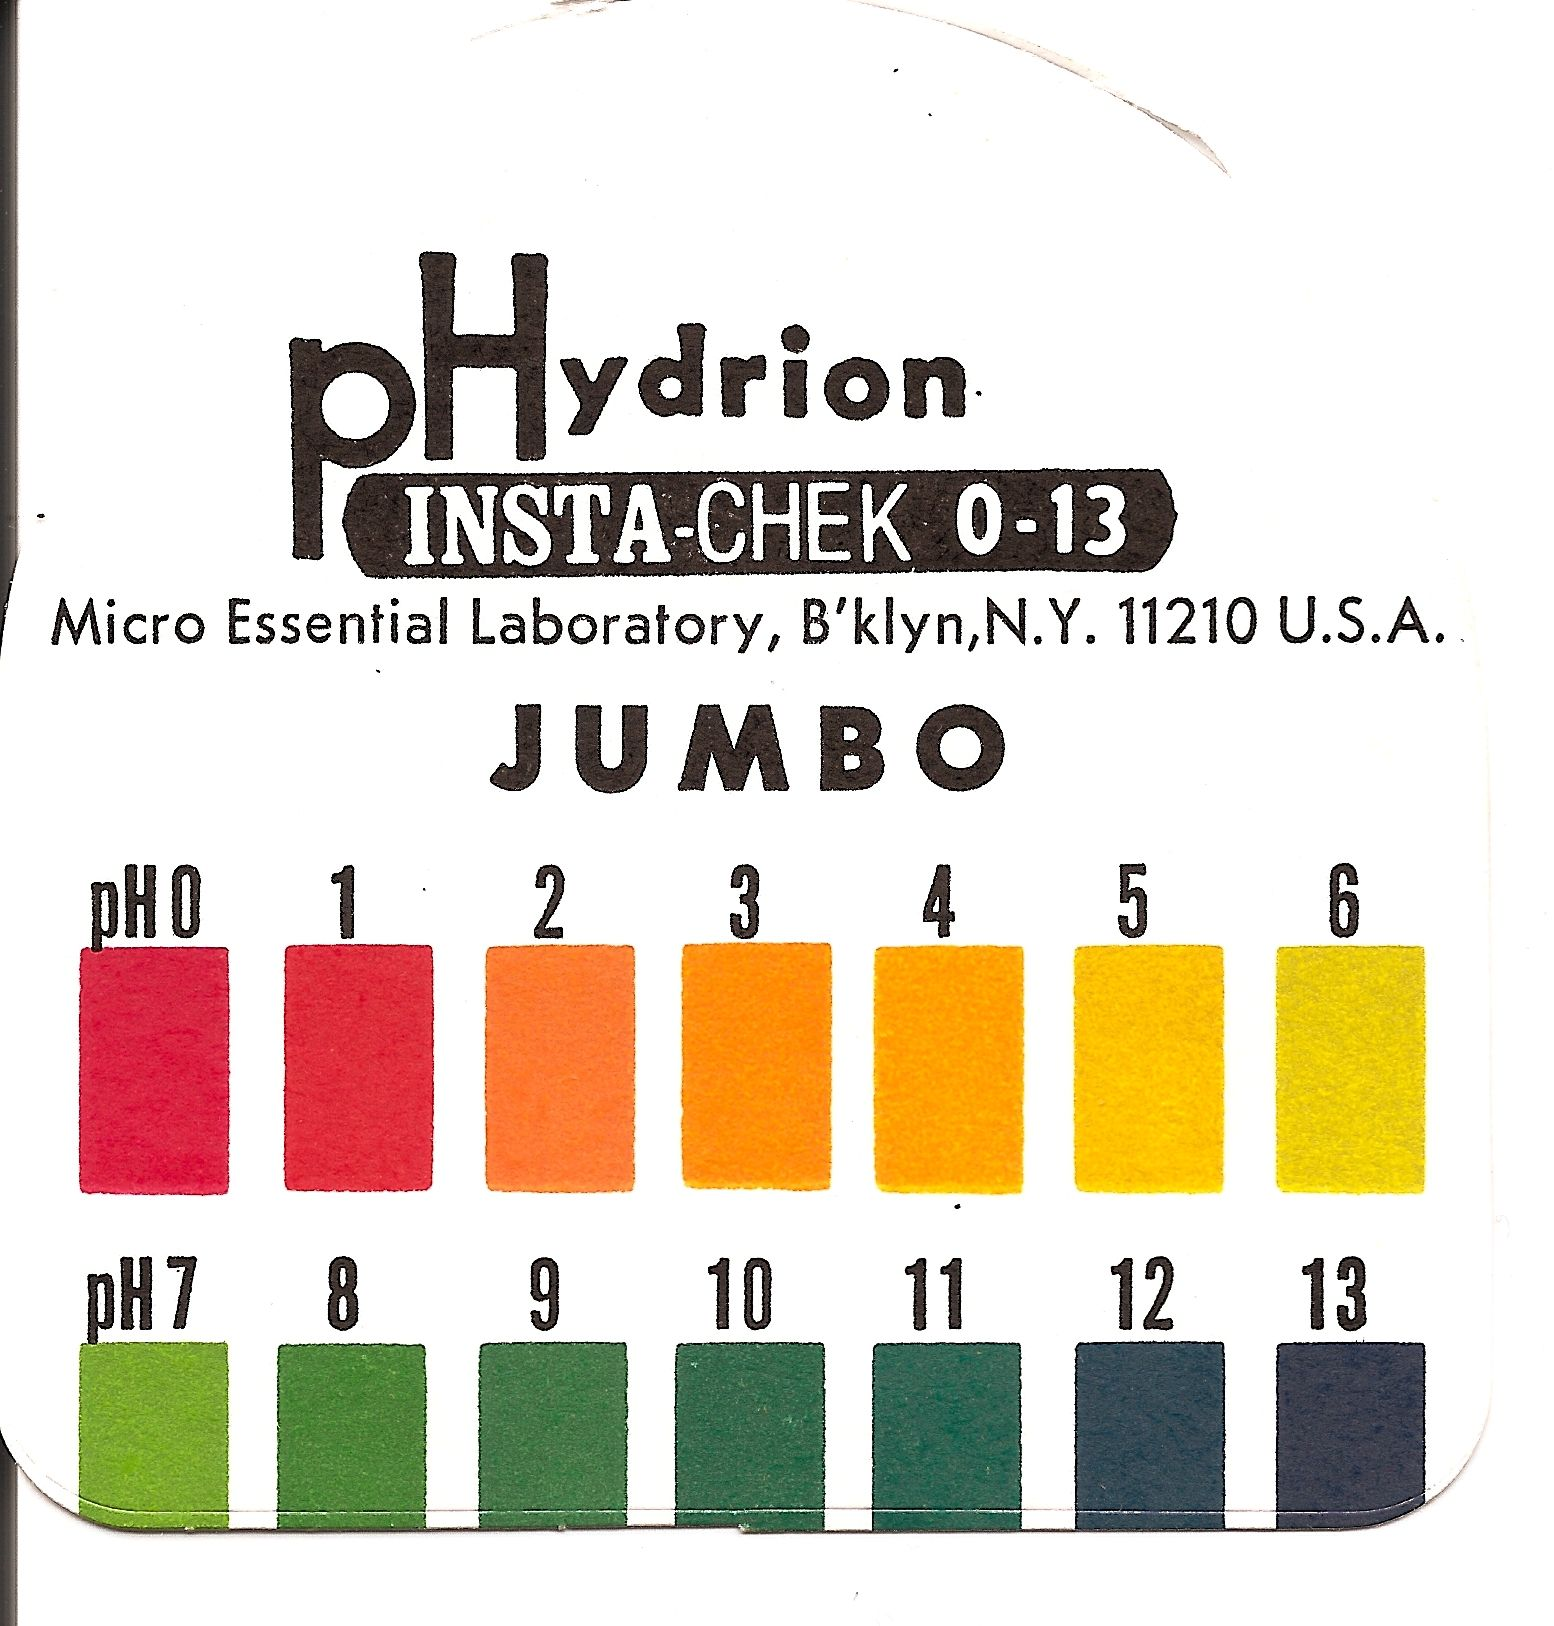 pH Litmus Paper Scale.jpg (1554×1626) | Acids  for Ph Scale Acids And Bases  35fsj